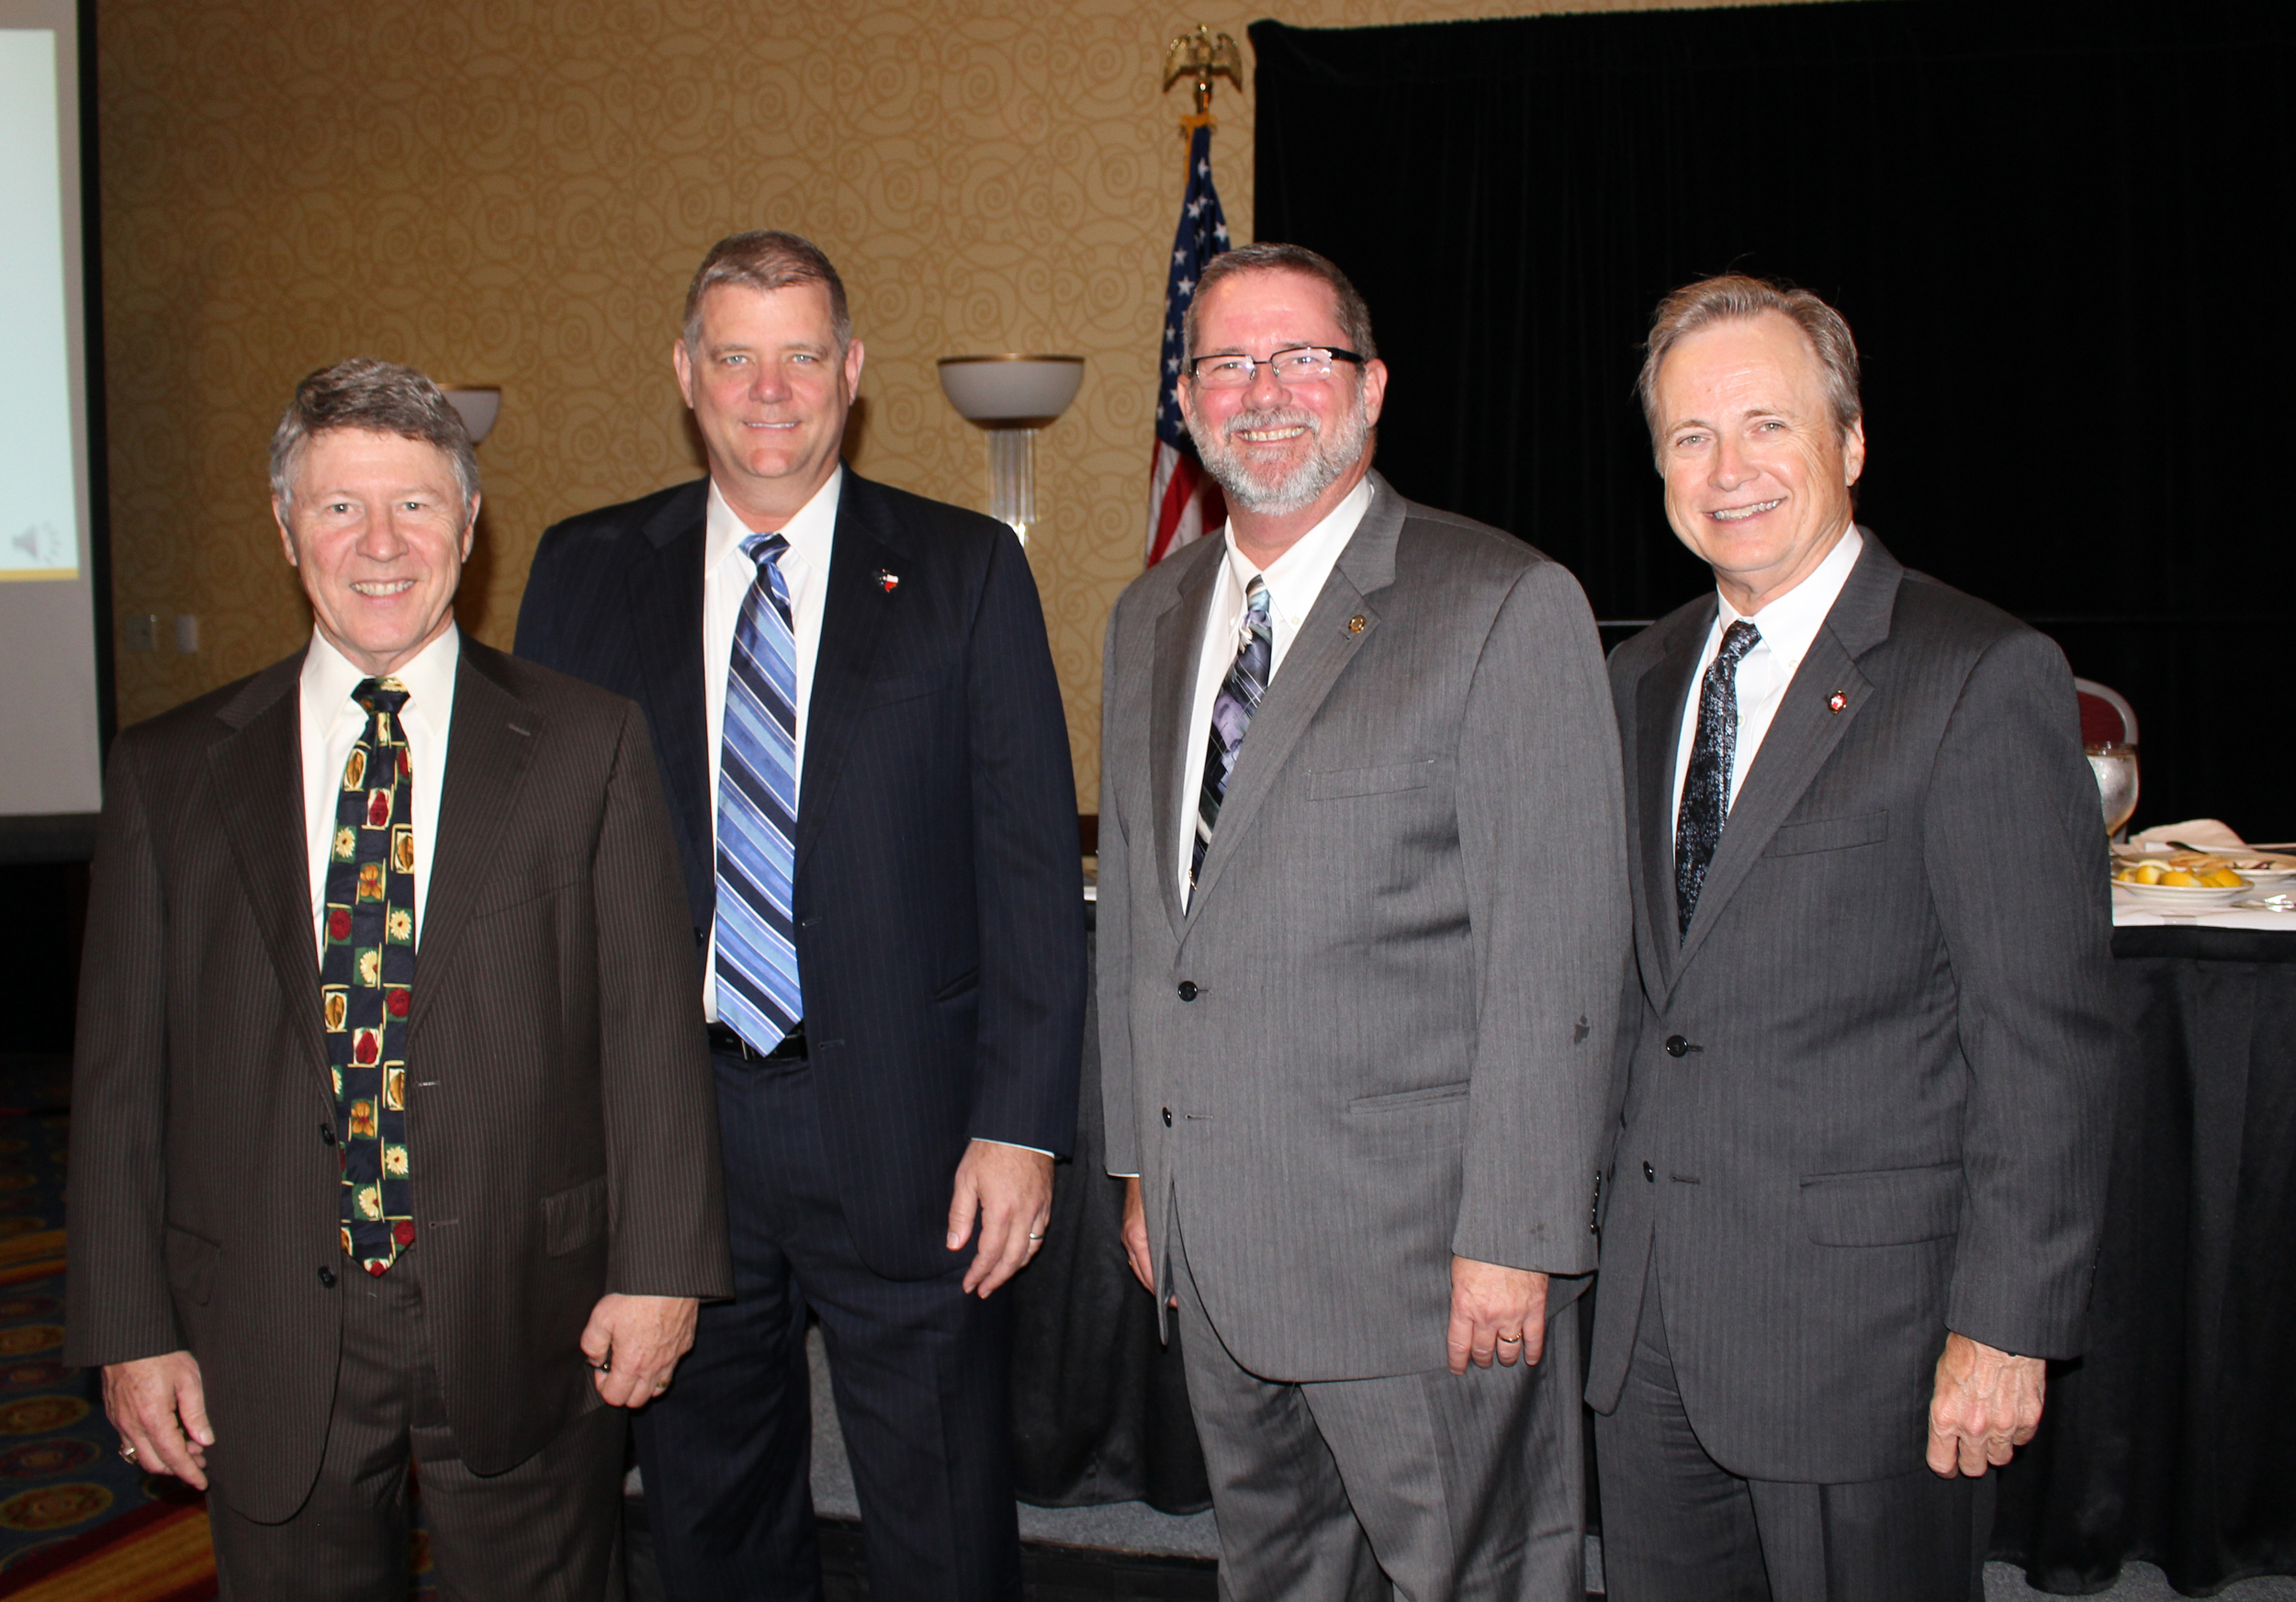 Baytran State of the Counties Lunch 05-12-16 278.JPG